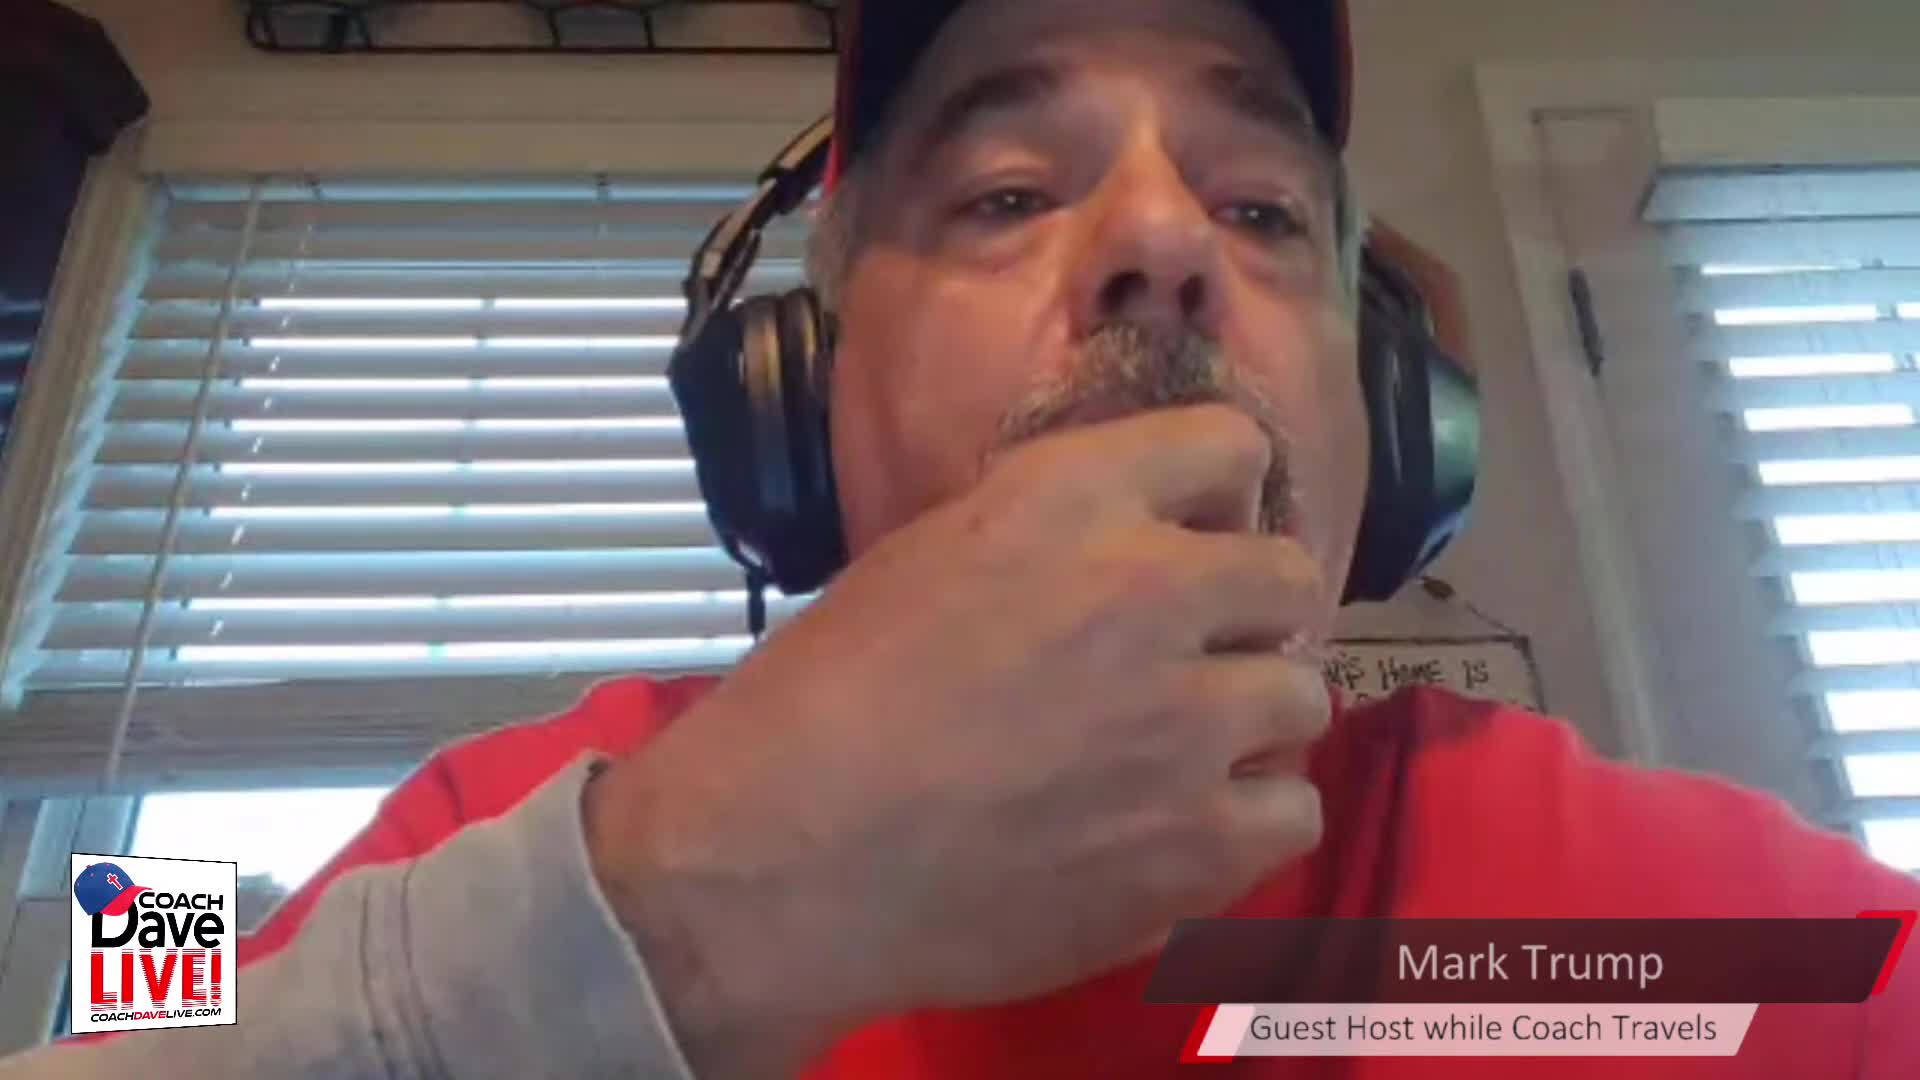 Coach Dave LIVE   4-9-2021   GUEST HOST MARK TRUMP: JUDGMENT OF THE WORLD